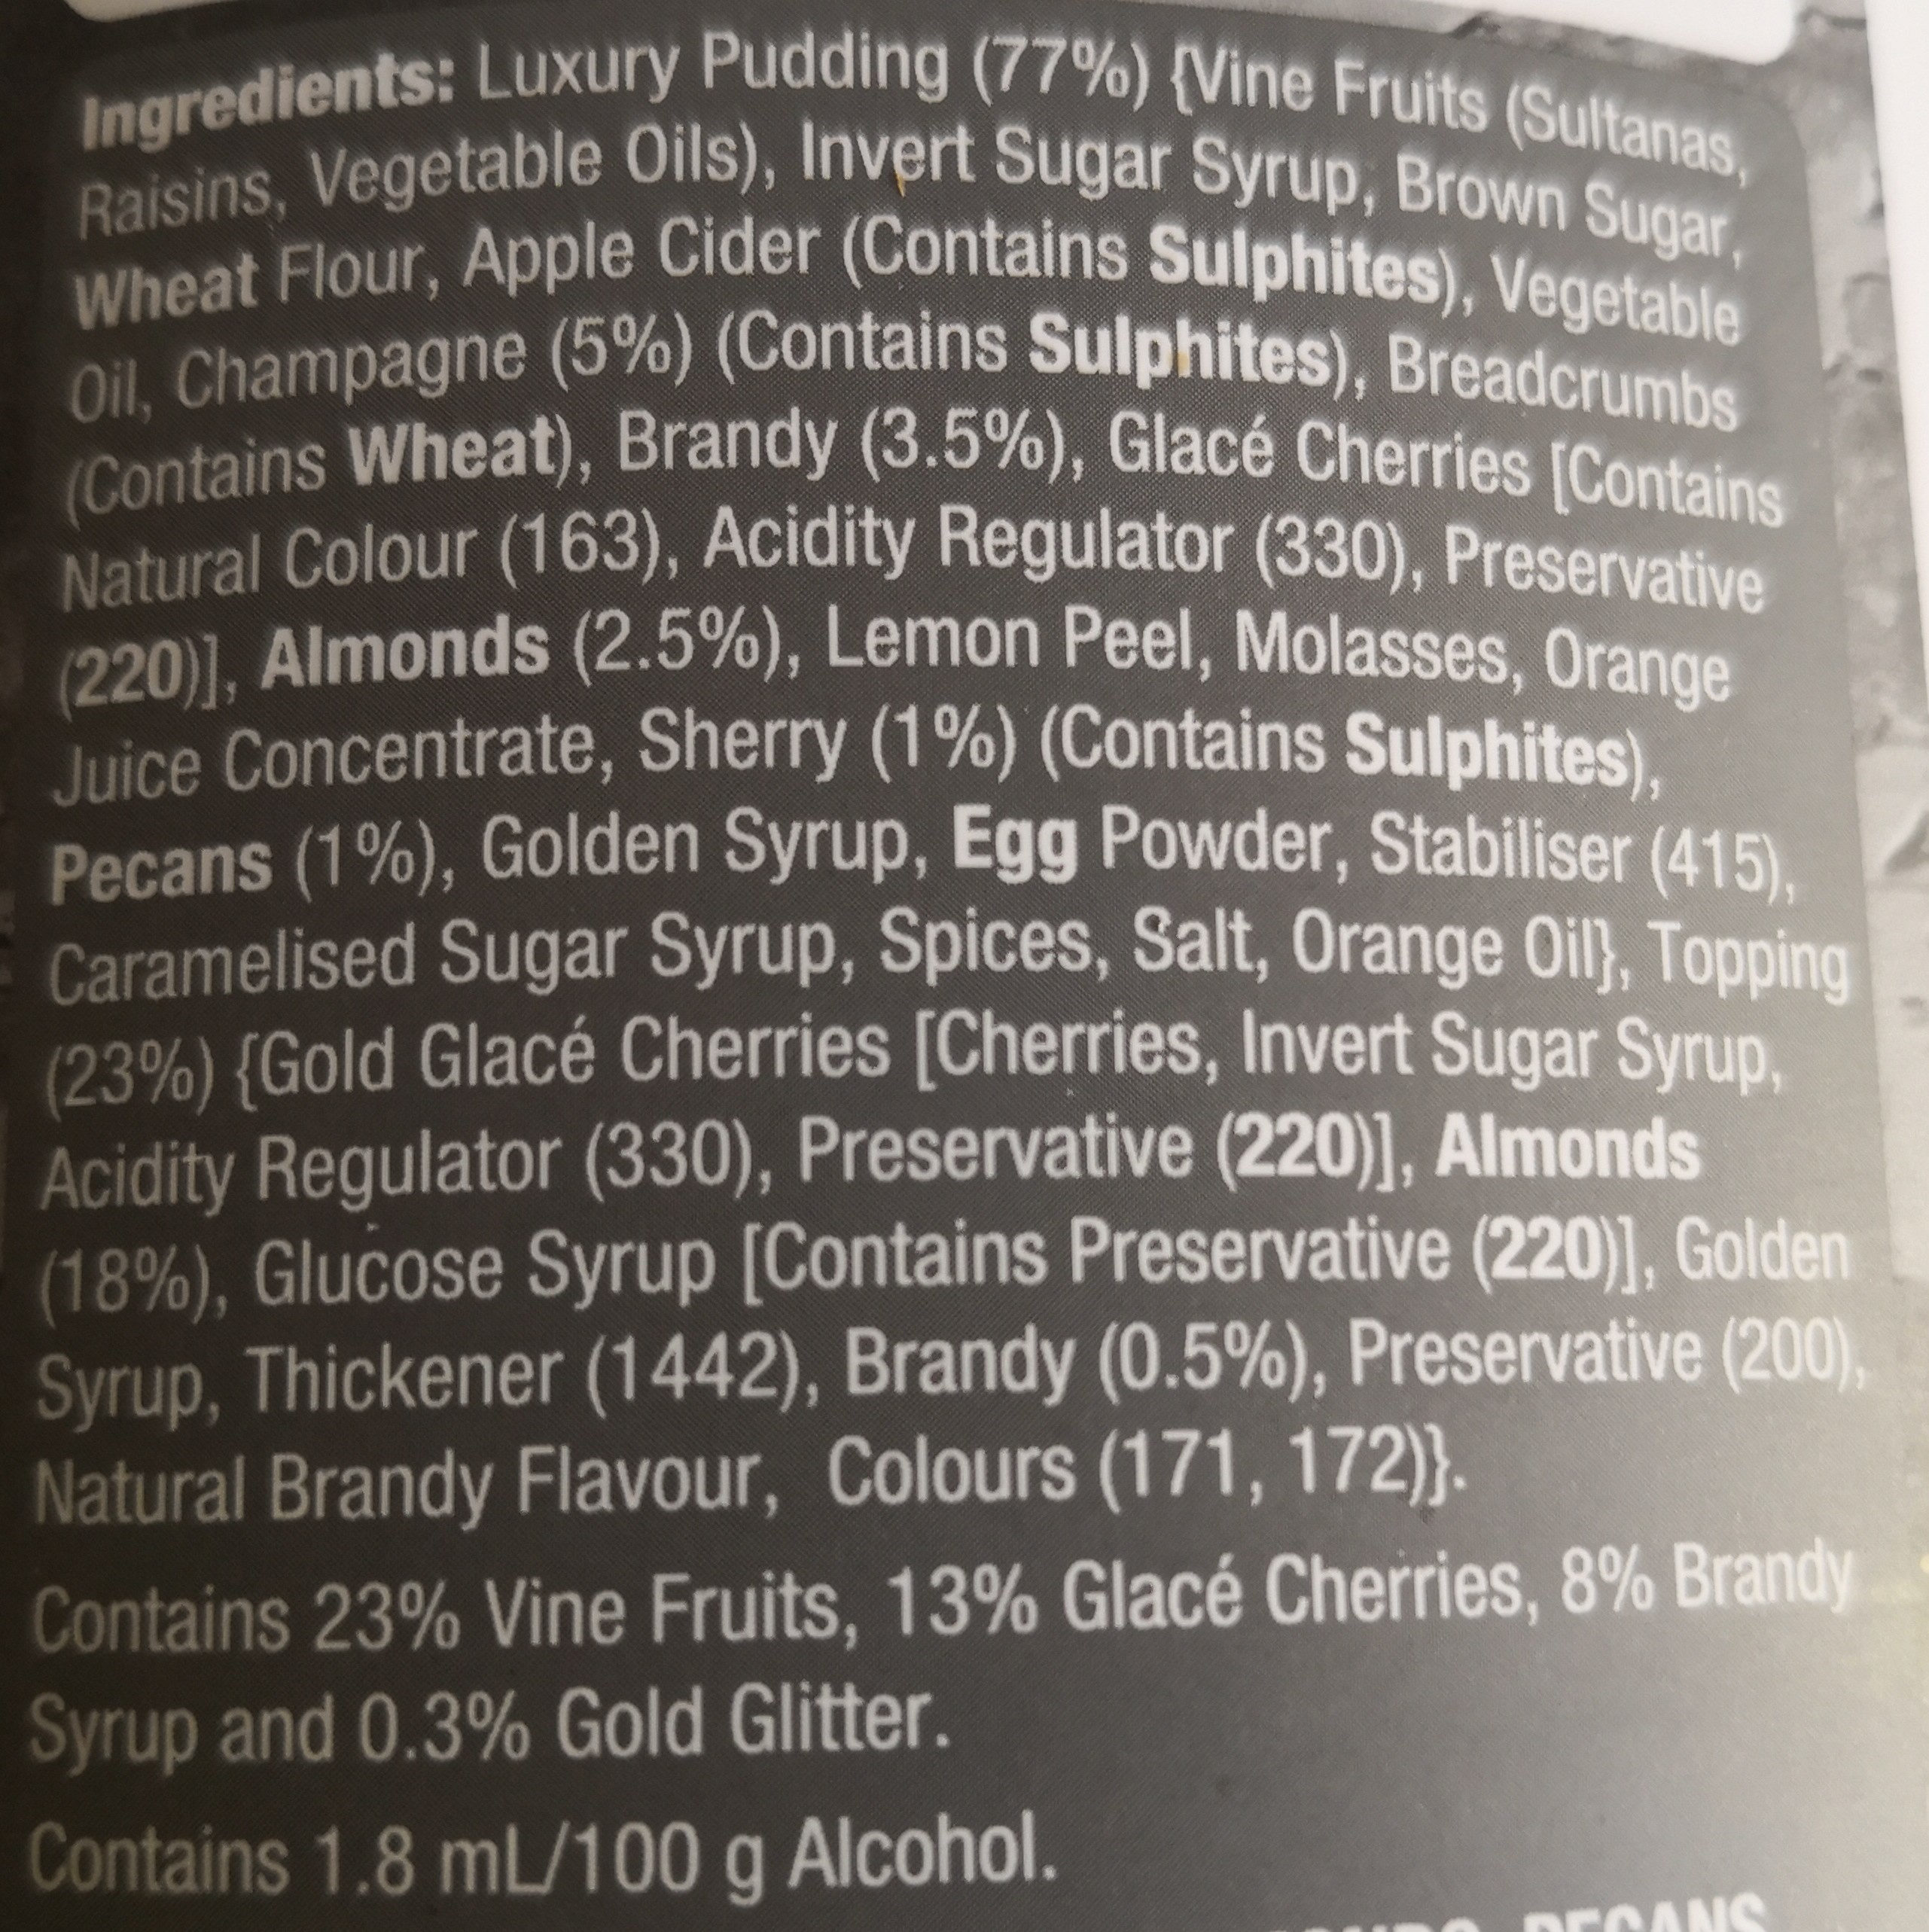 Luxury Golden Champagne Pudding - Ingredients